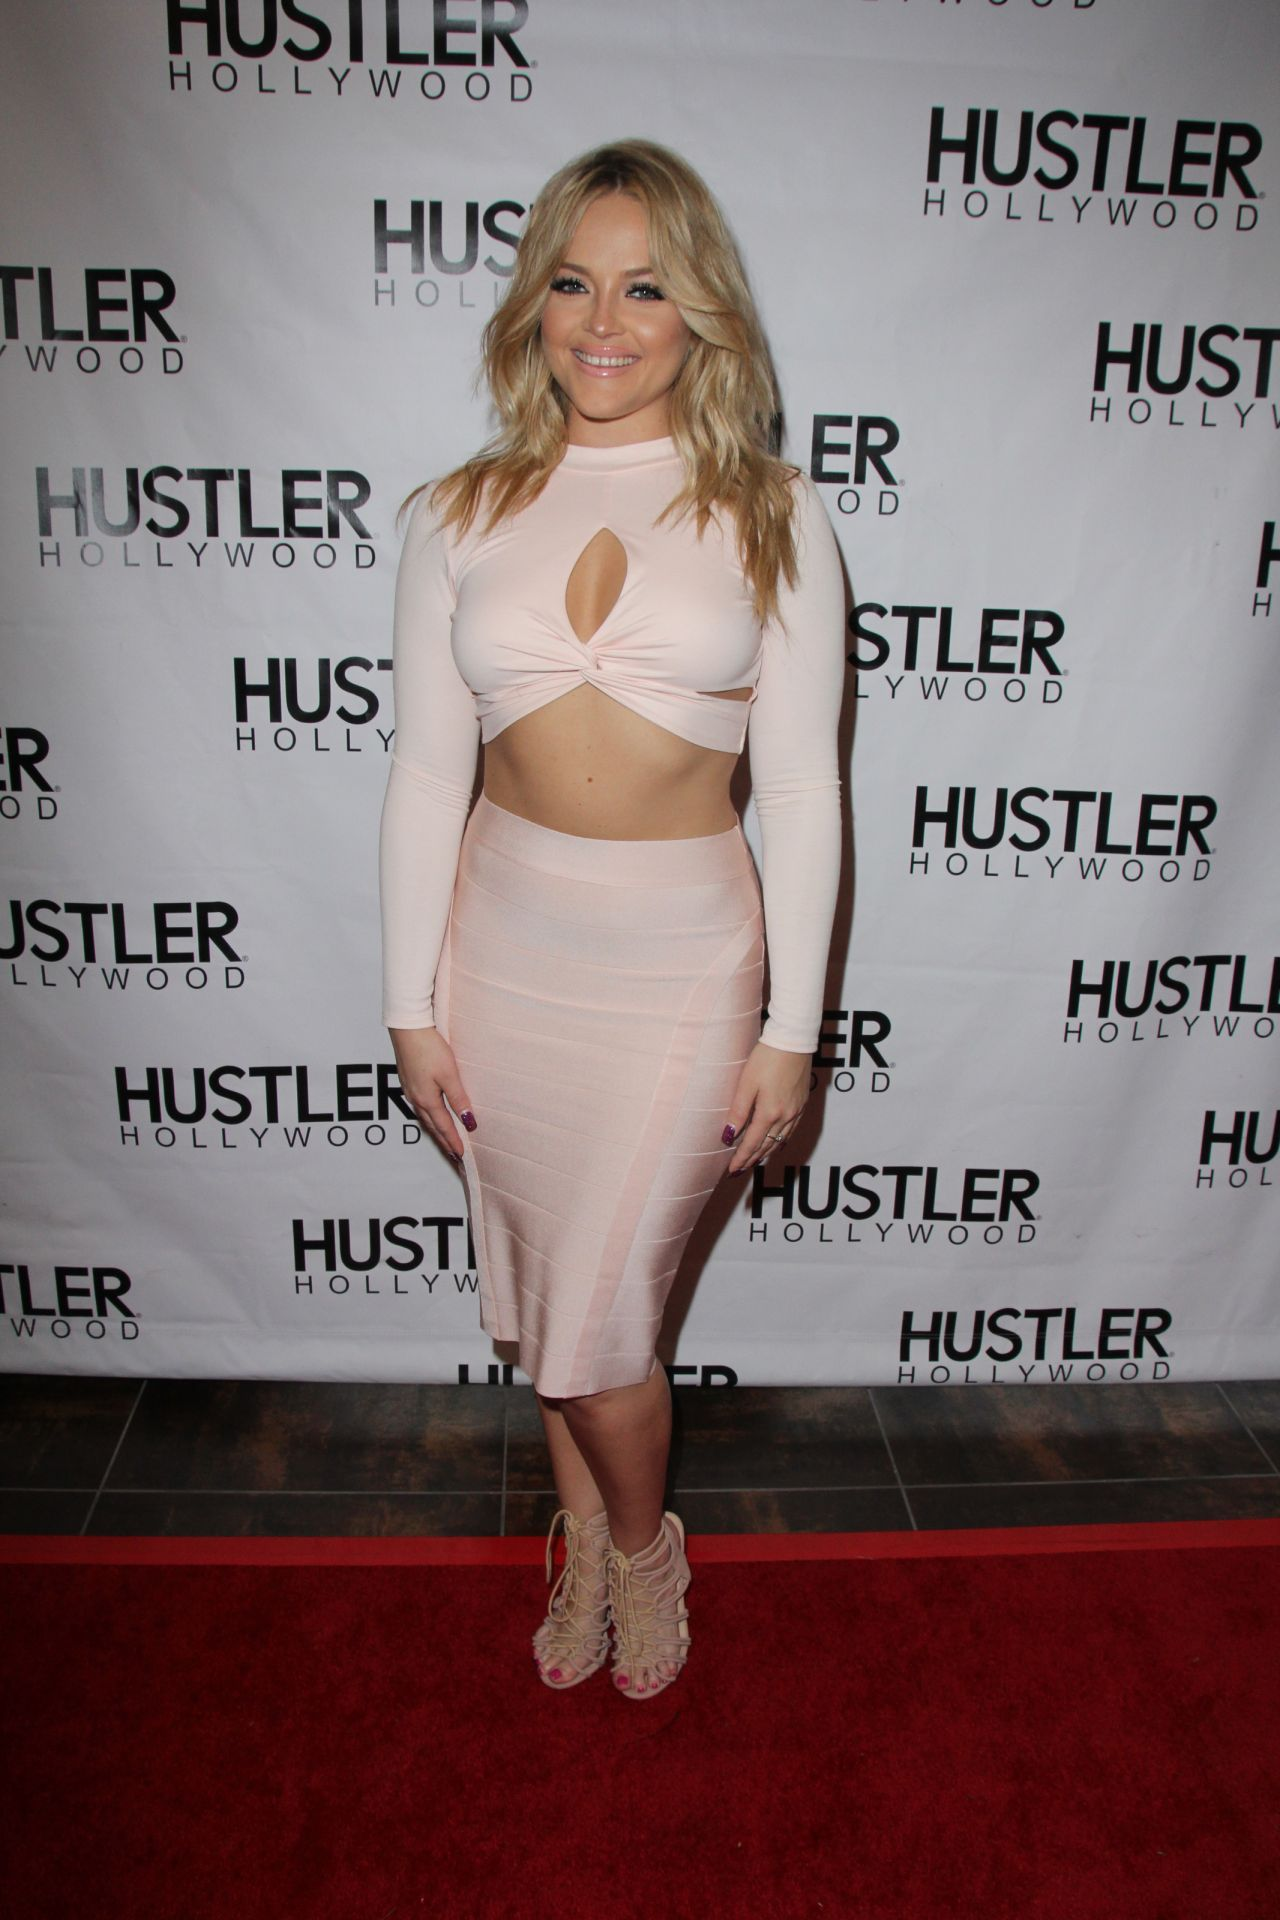 Alexis Texas – Opening of the New Hustler Hollywood 4/9 ...